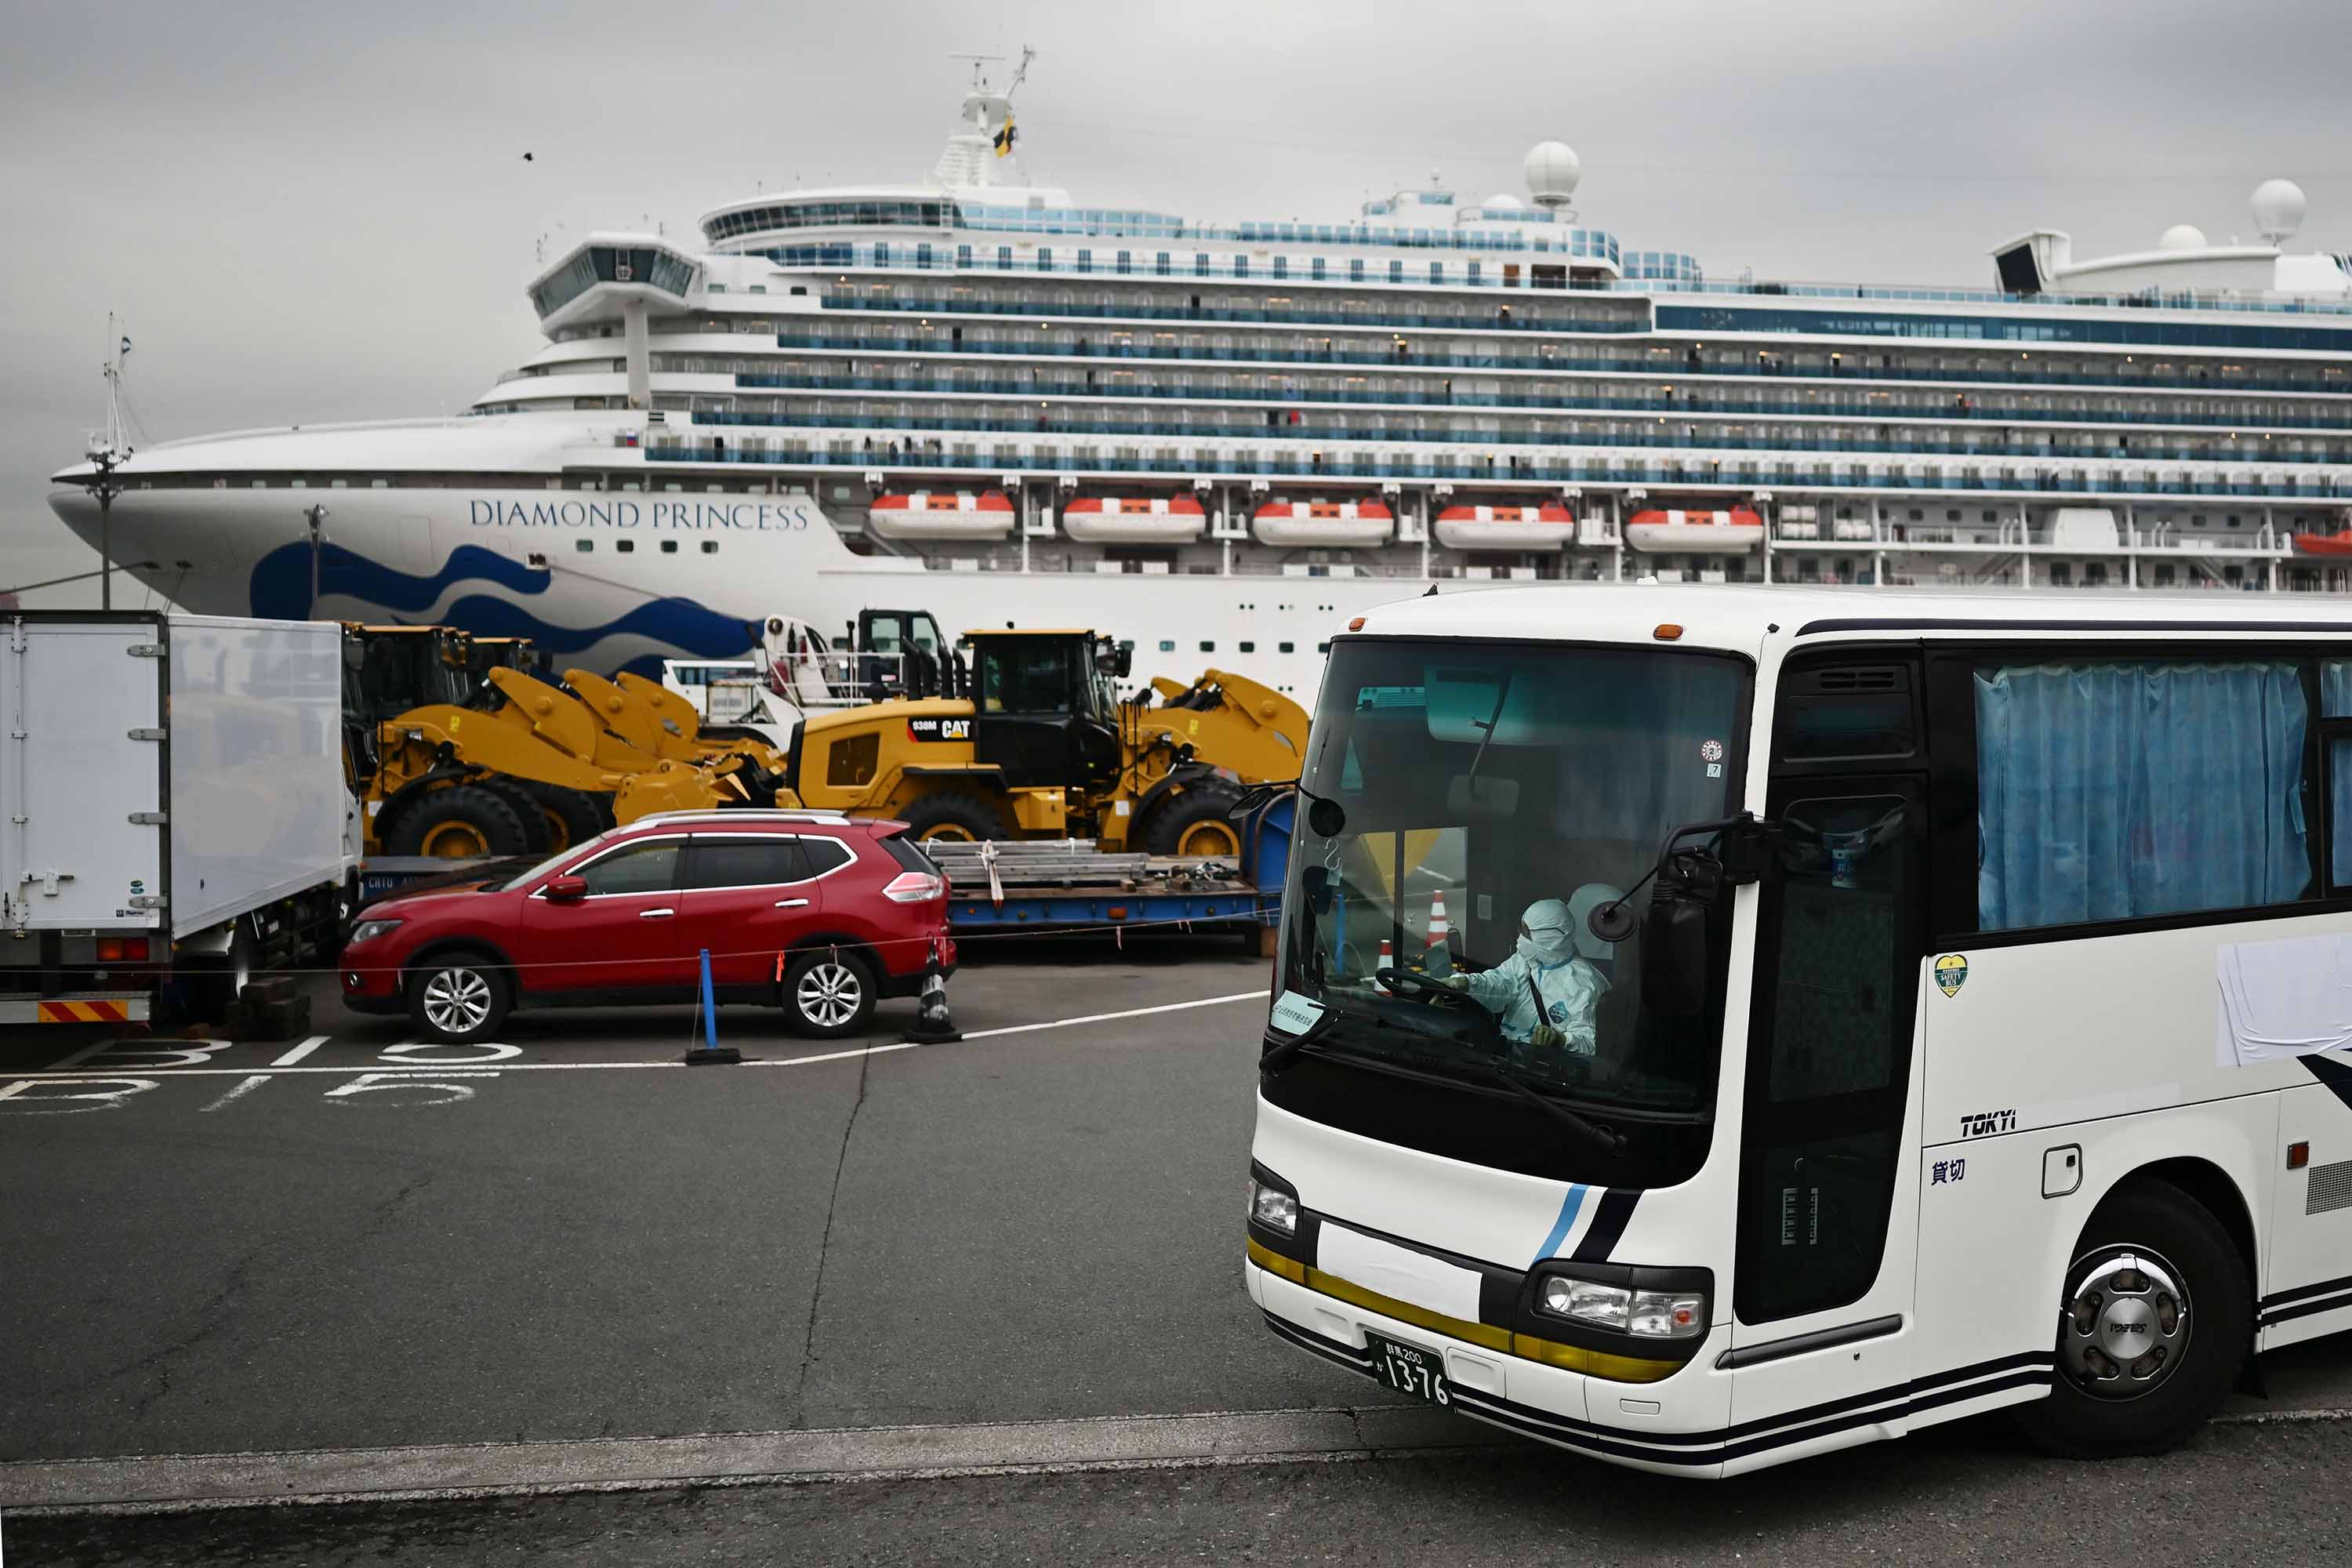 A bus with a driver wearing full protective gear departs from the port where the Diamond Princess cruise shipis docked in Yokohama, Japan, on Friday.